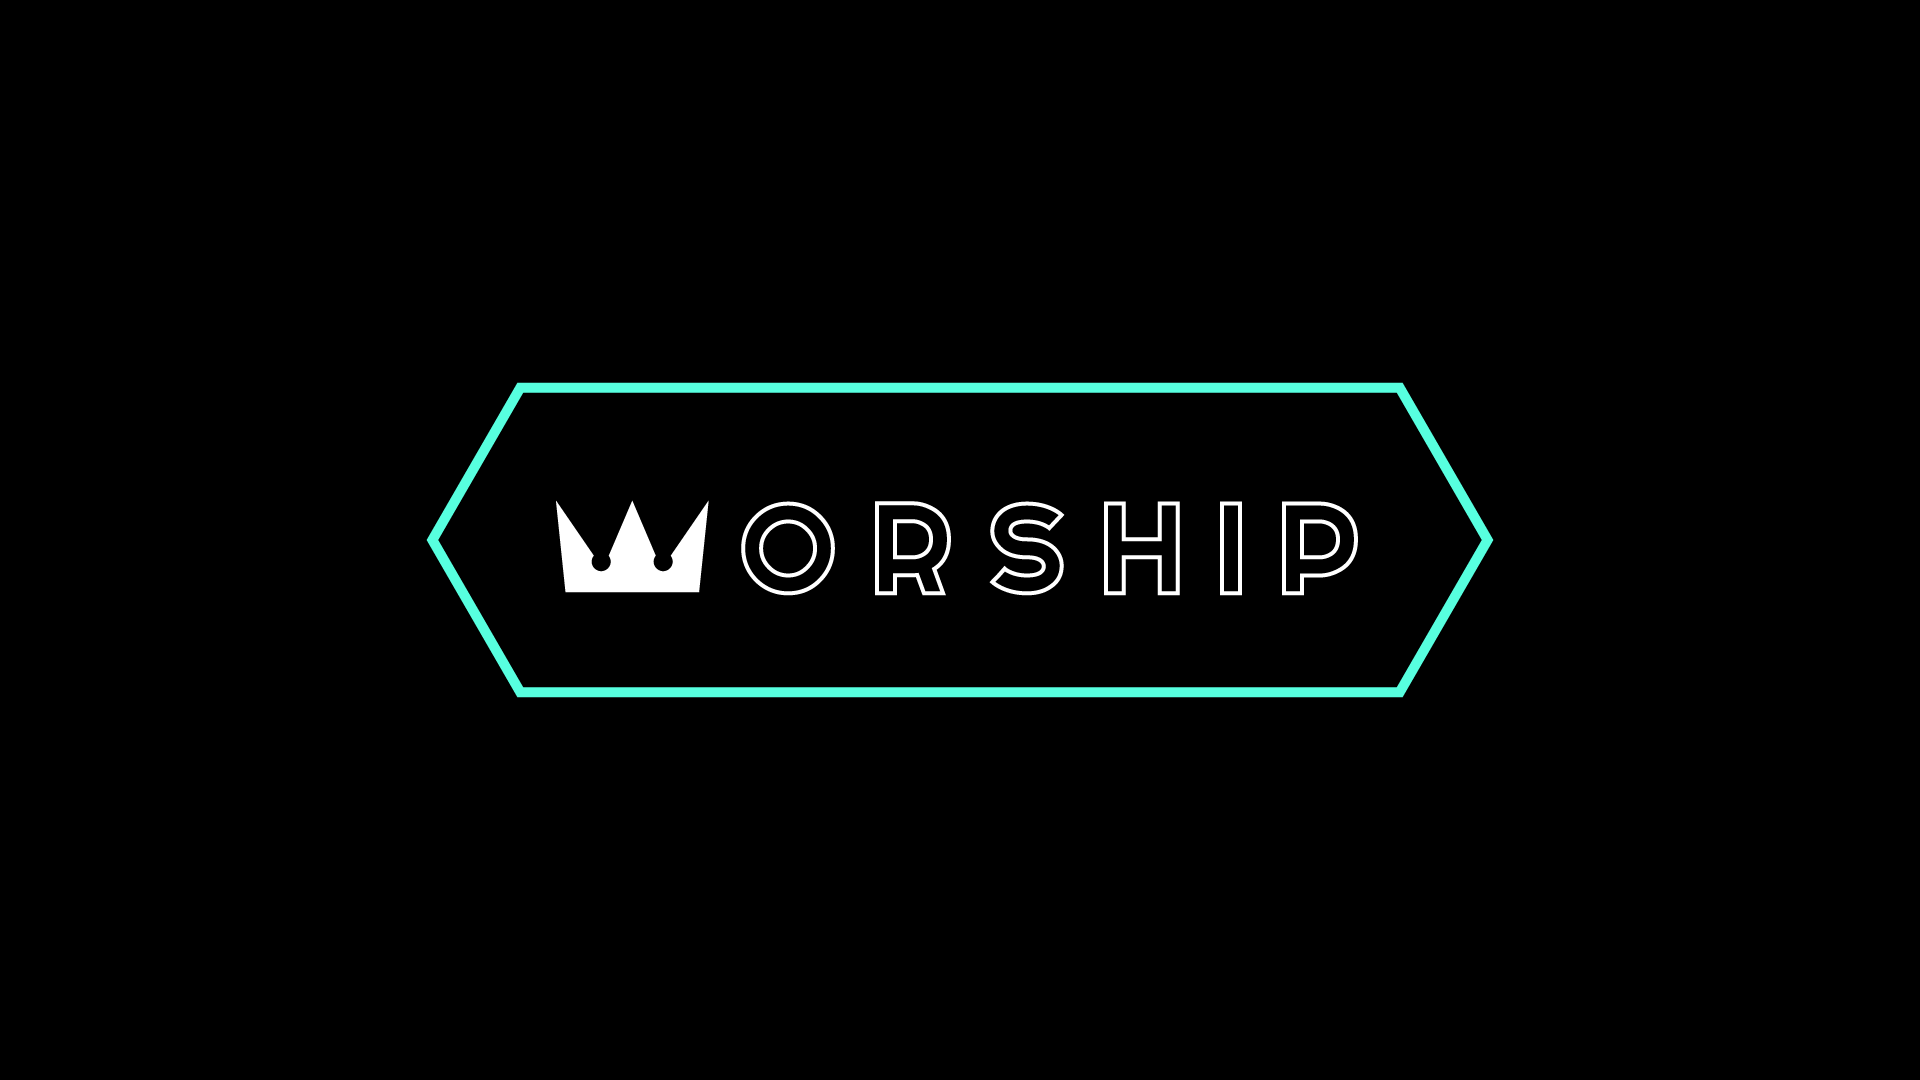 Worship Graphic Design for Churches